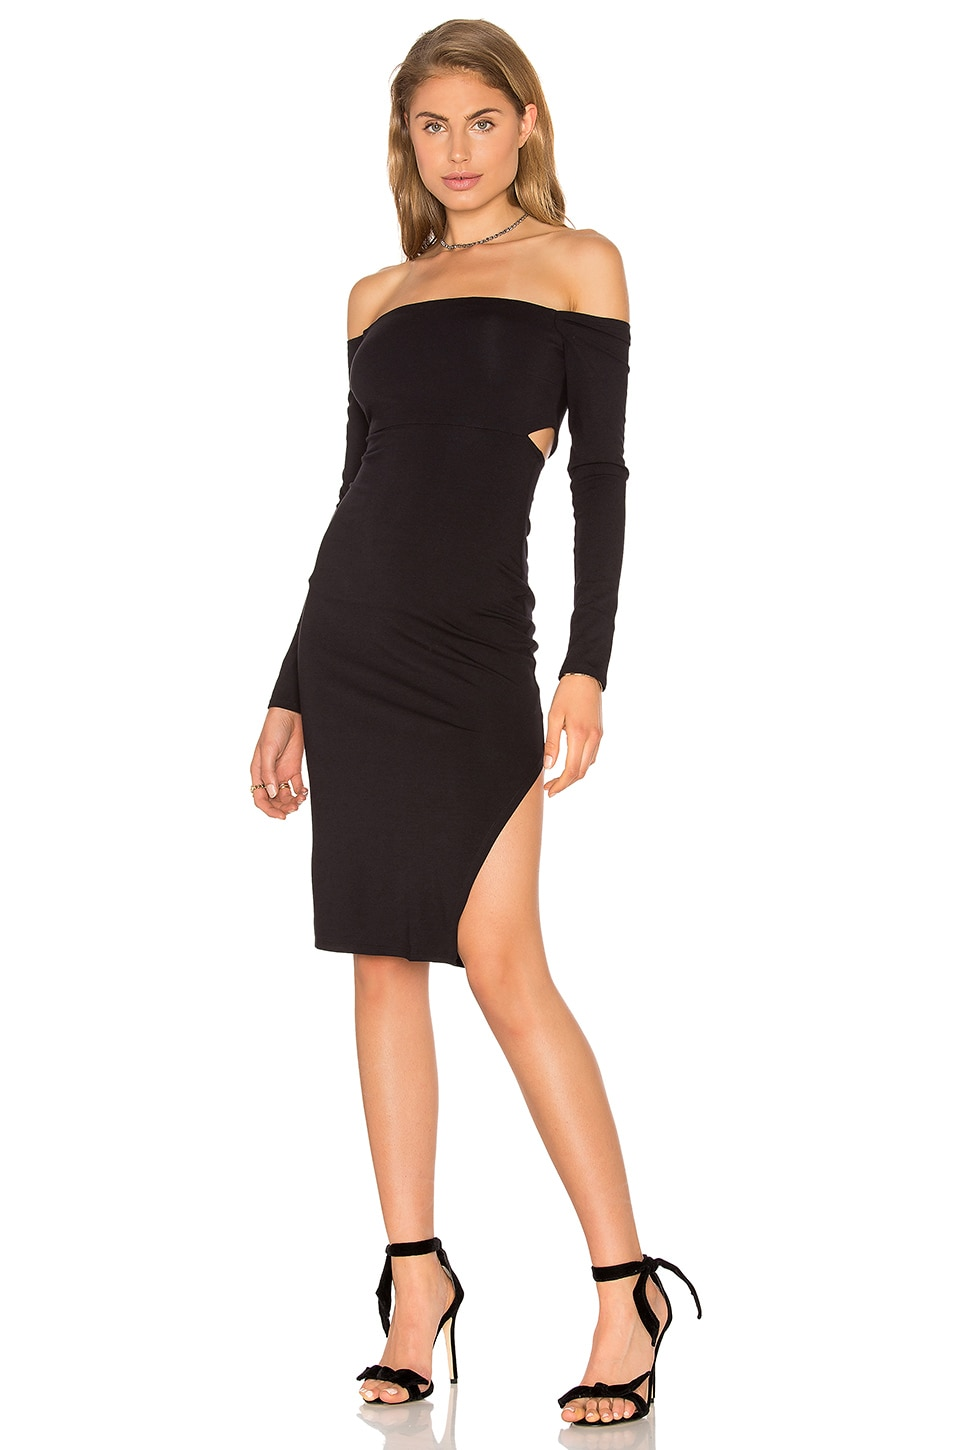 twenty Off Shoulder Bodycon Dress in Black